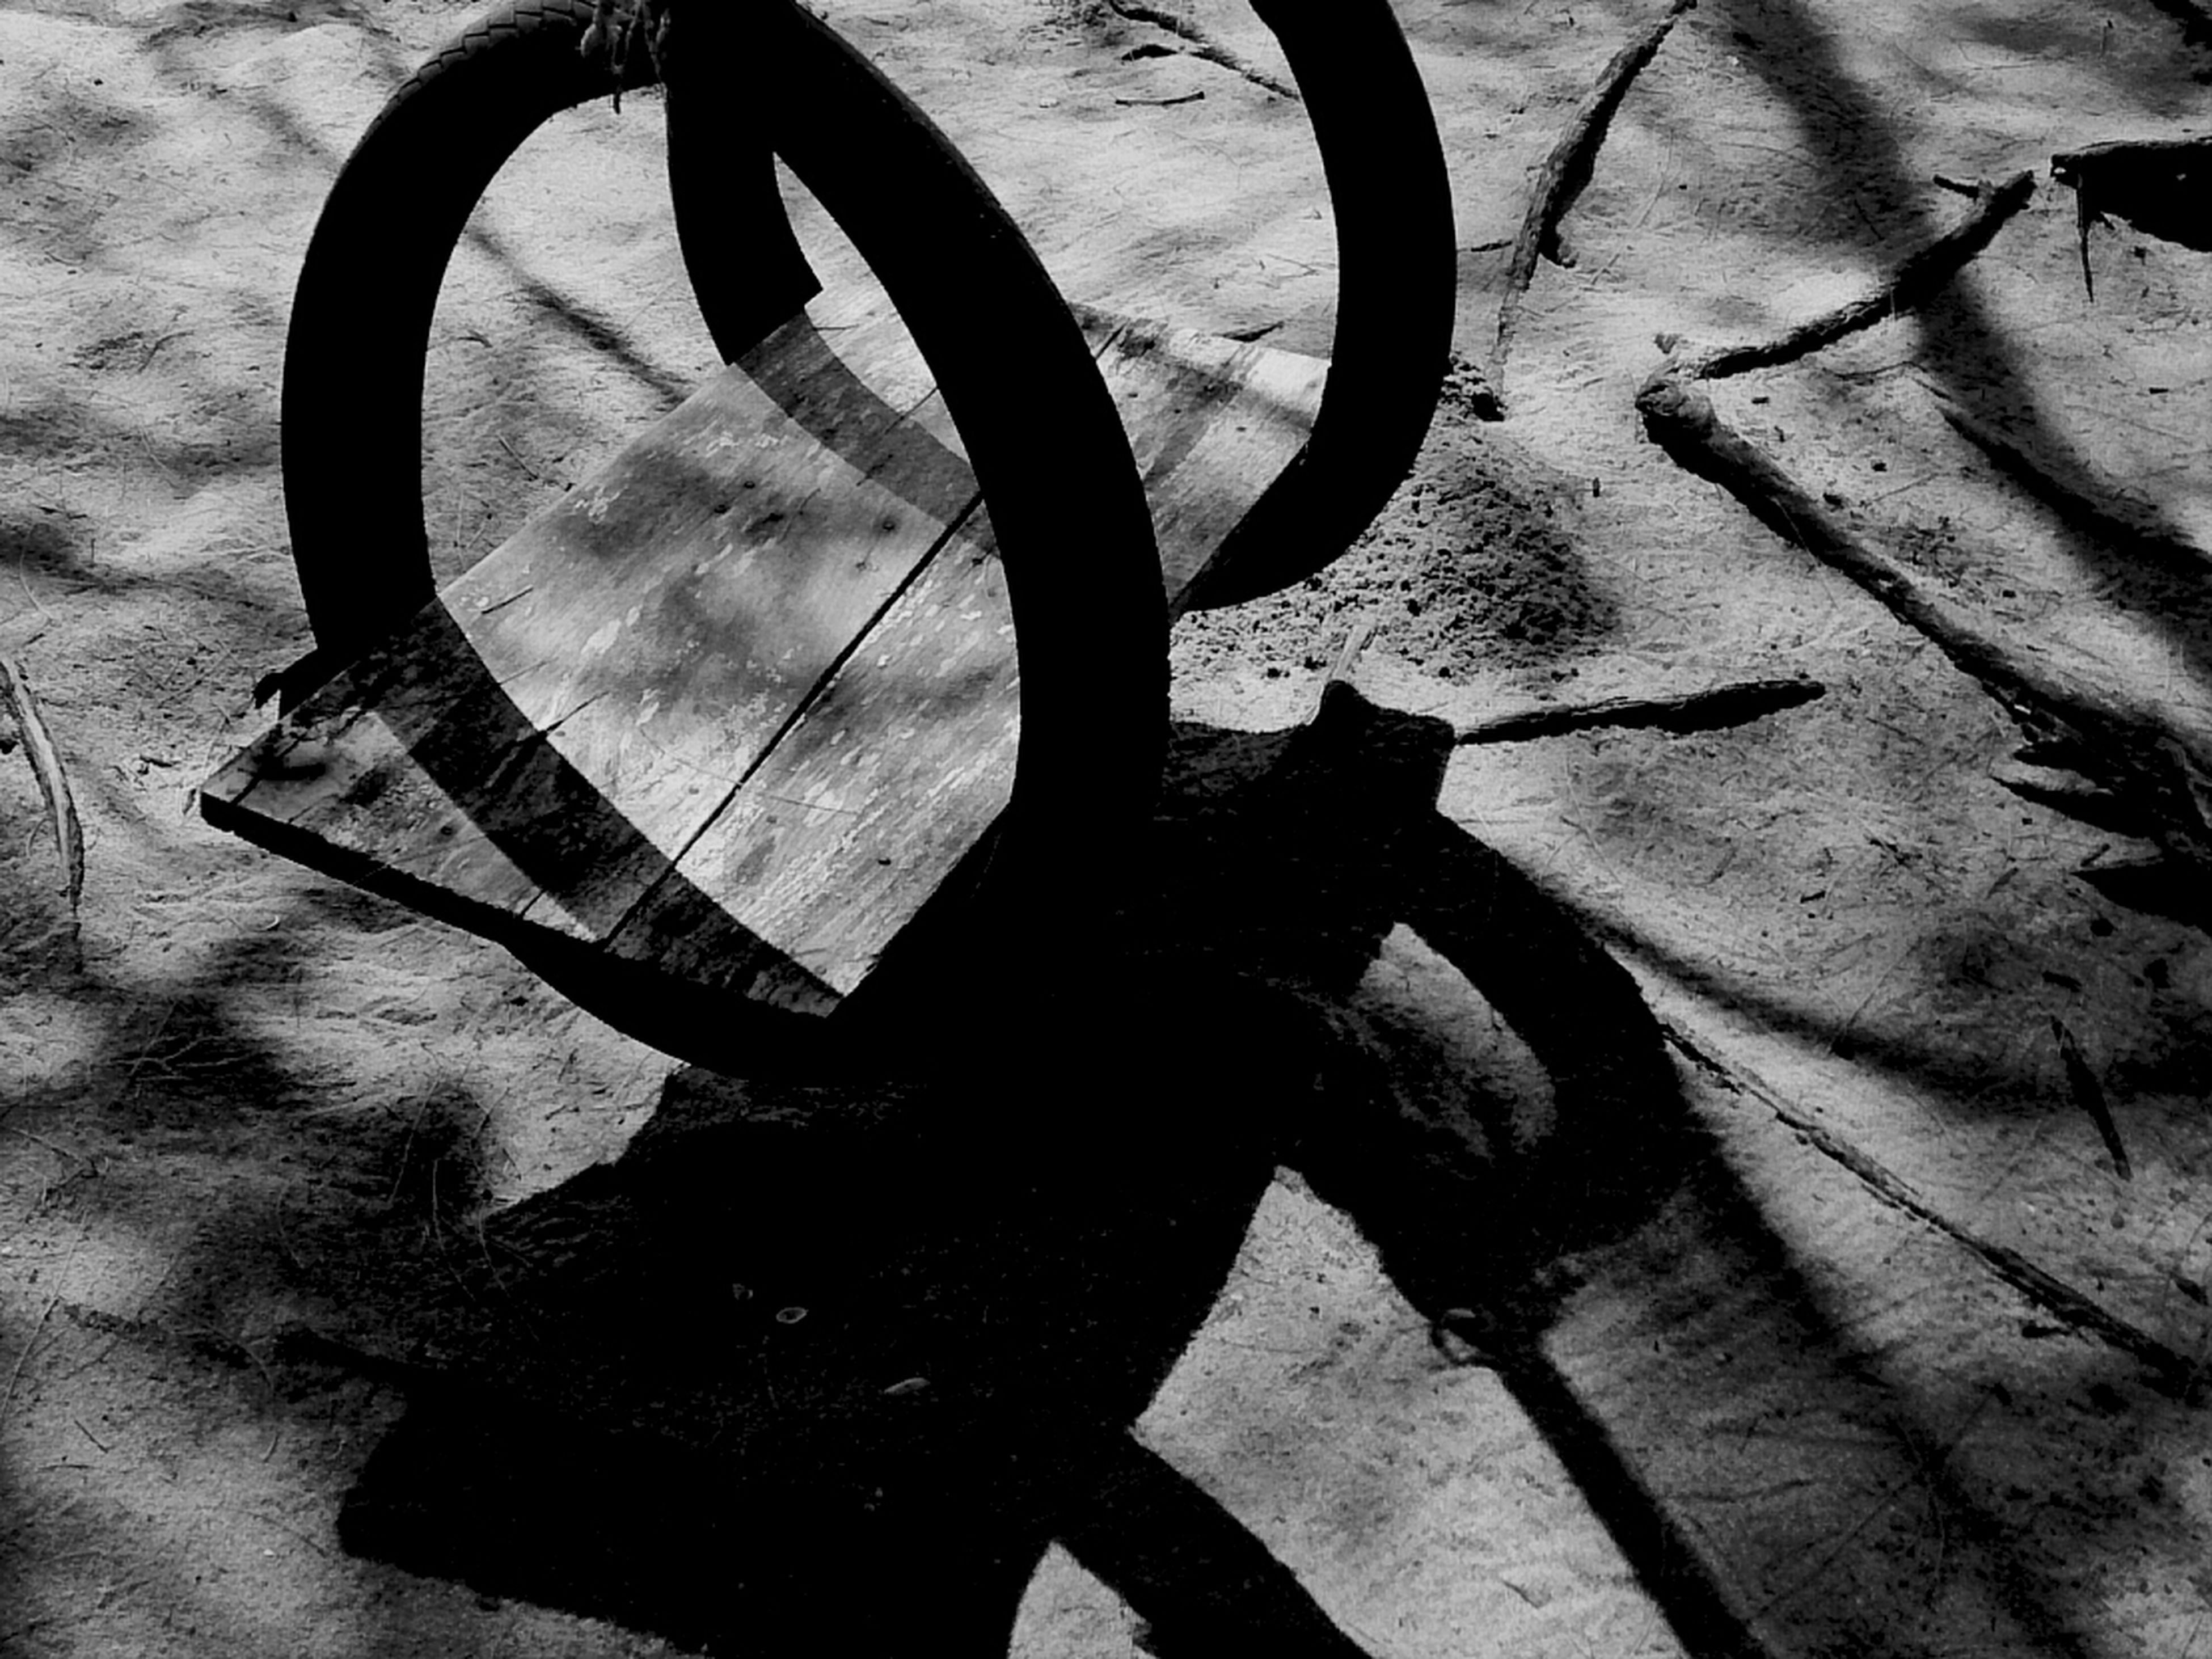 shadow, high angle view, sunlight, bicycle, wheel, close-up, street, outdoors, no people, day, metal, transportation, single object, ground, abandoned, wall - building feature, still life, part of, absence, metallic